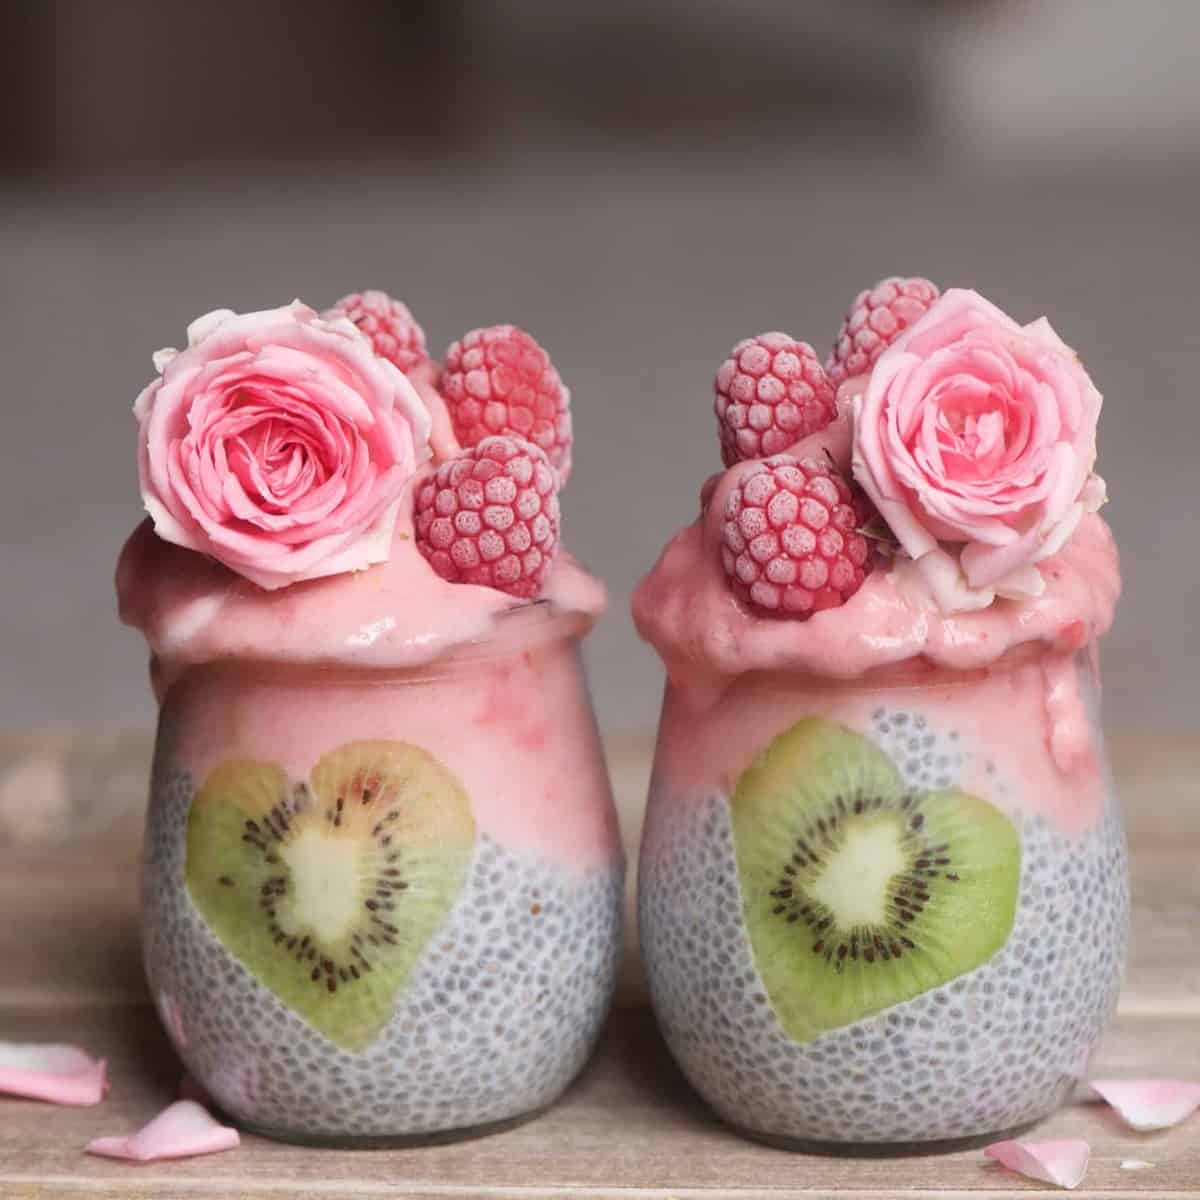 Two jars with chia pudding pink yogurt decorated with frosted raspberries and edible roses